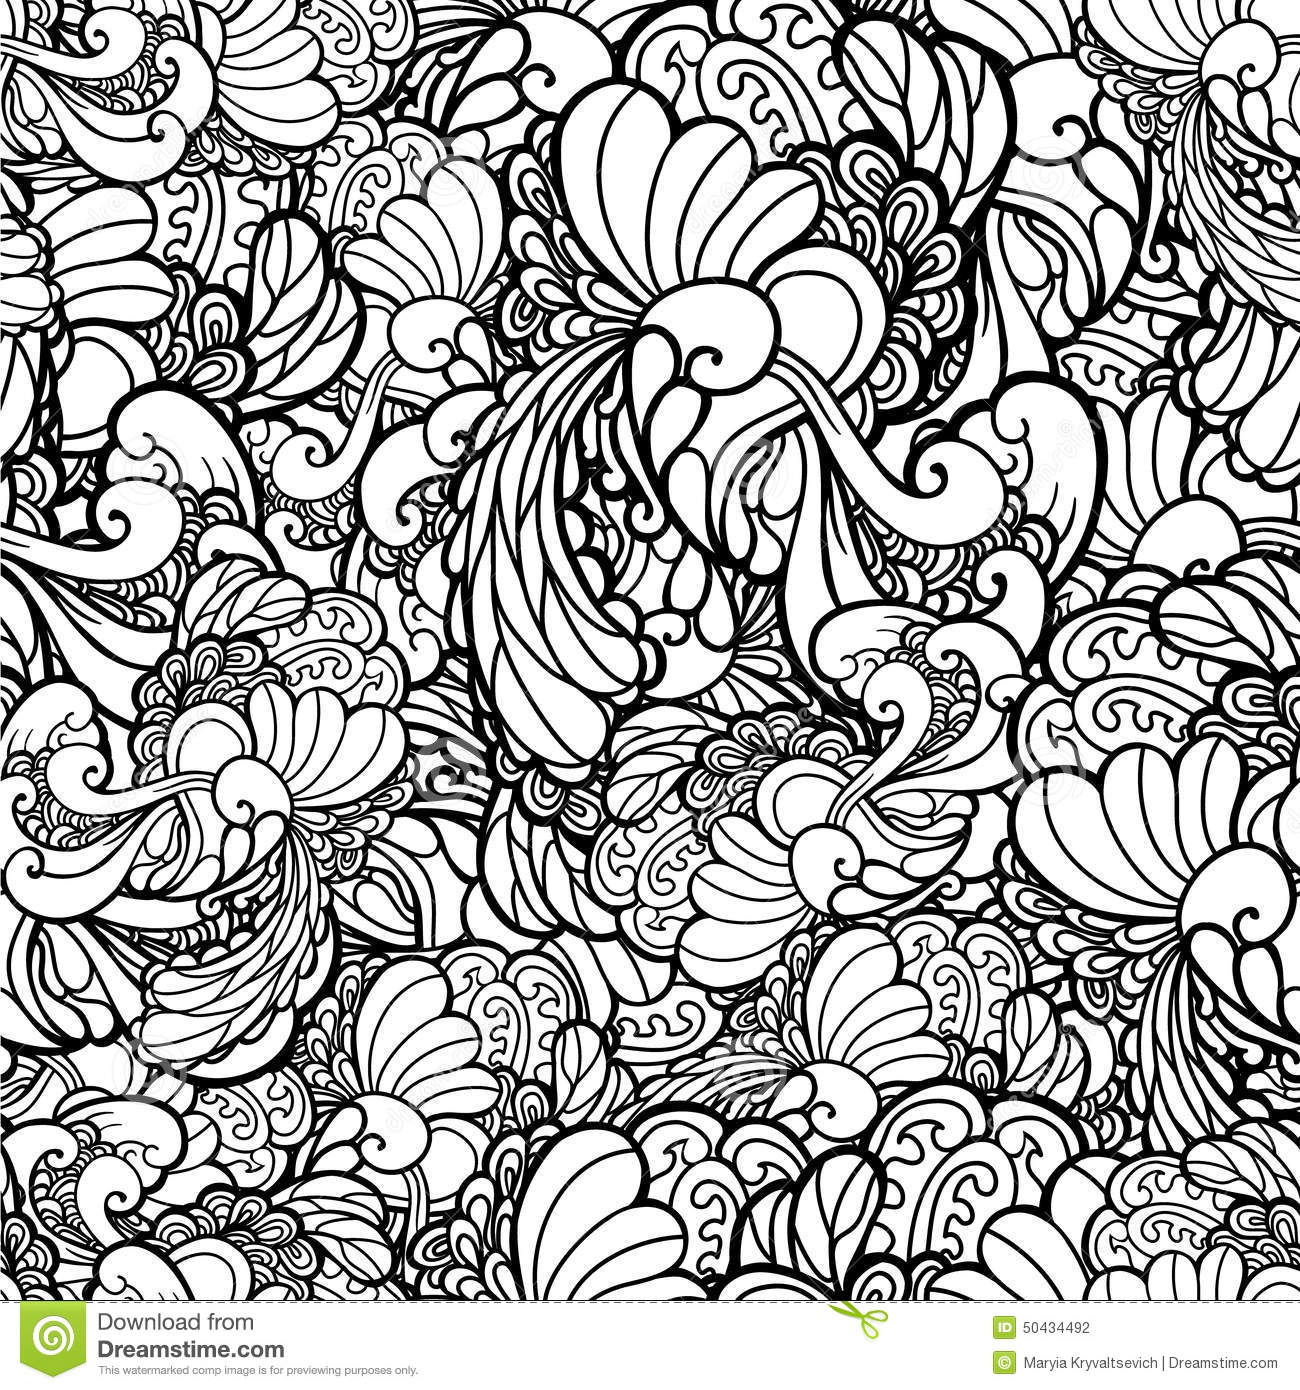 how to create black and white a floral vector